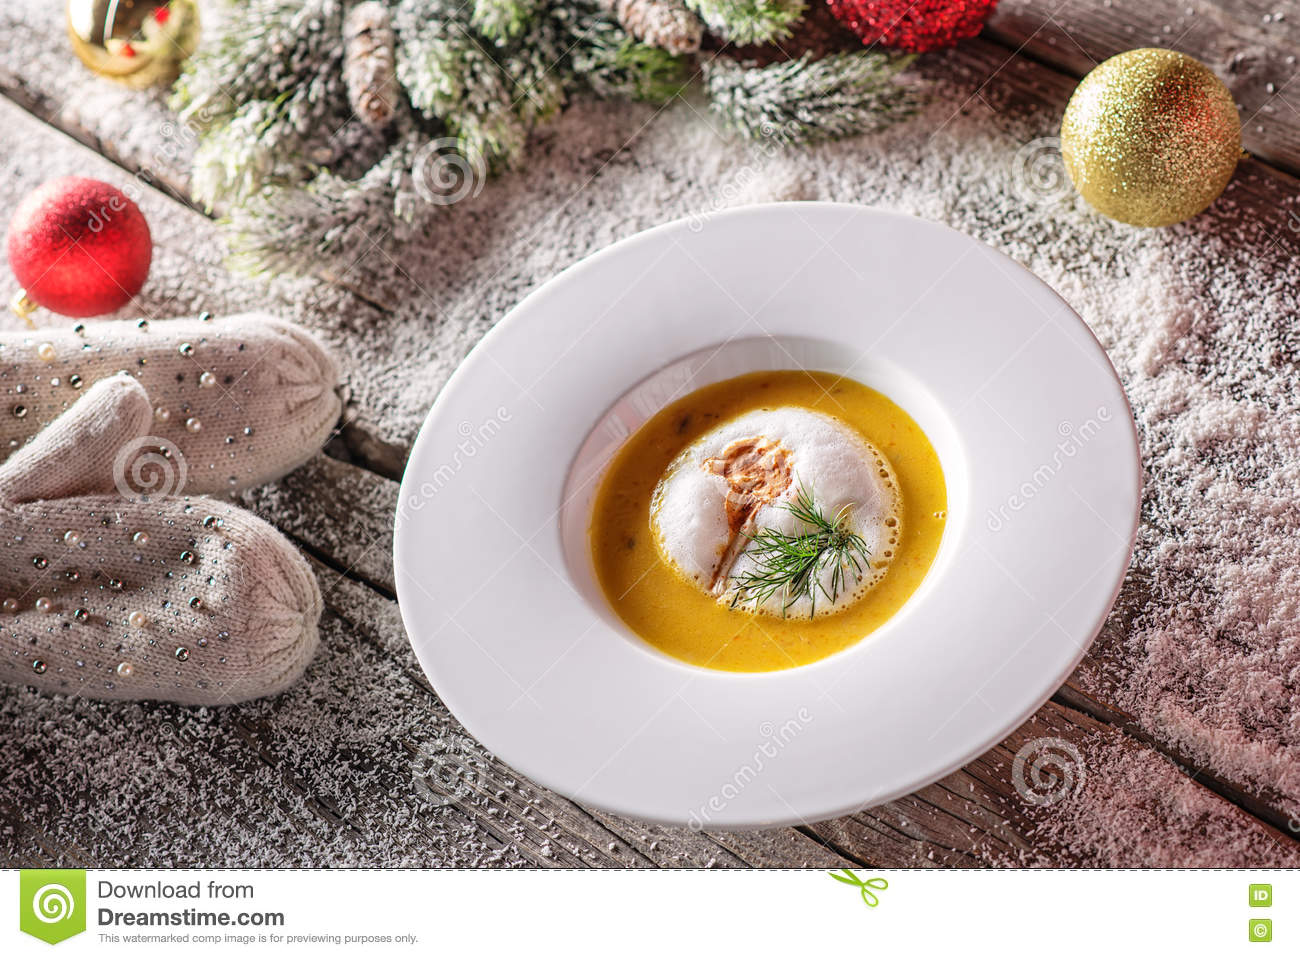 Chrismas fish soup in white plate with christmas decorations, modern gastronomy